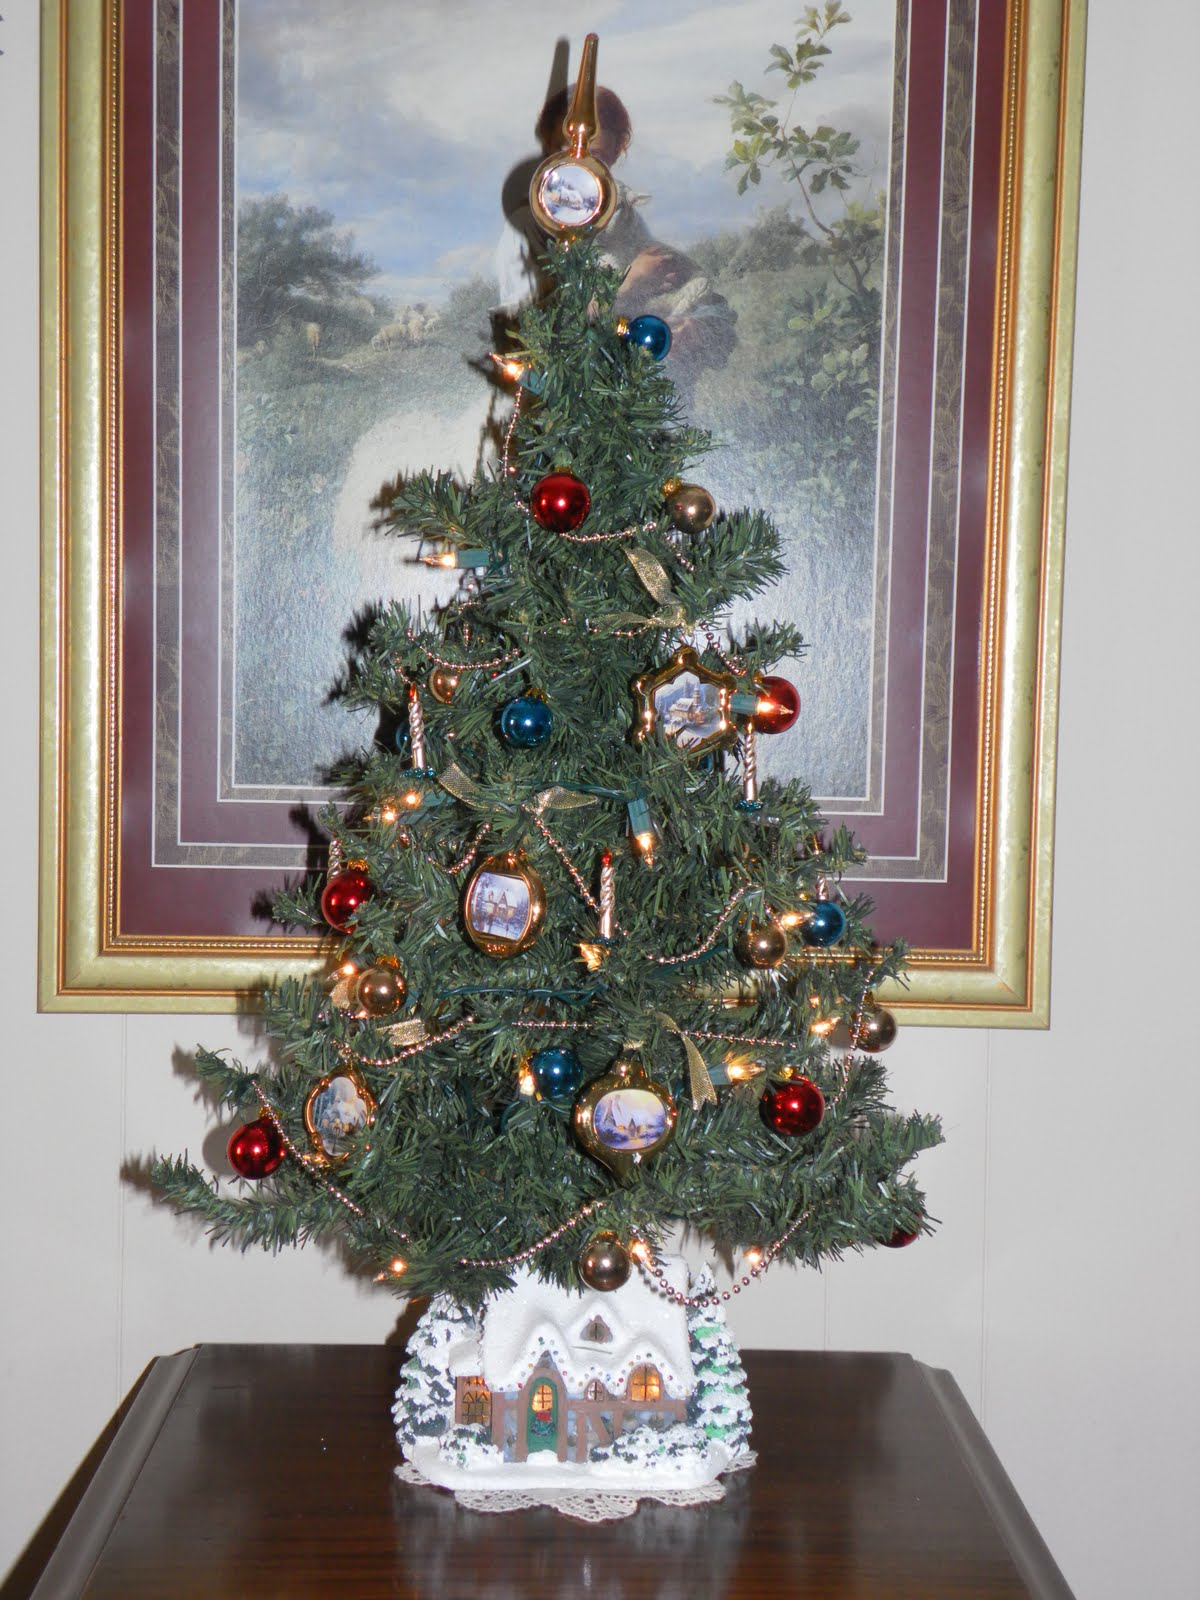 Kinkade christmas ornaments - I Have Always Had A Huge Tree But This Year I Used This Pre Decorated Thomas Kinkade Tree